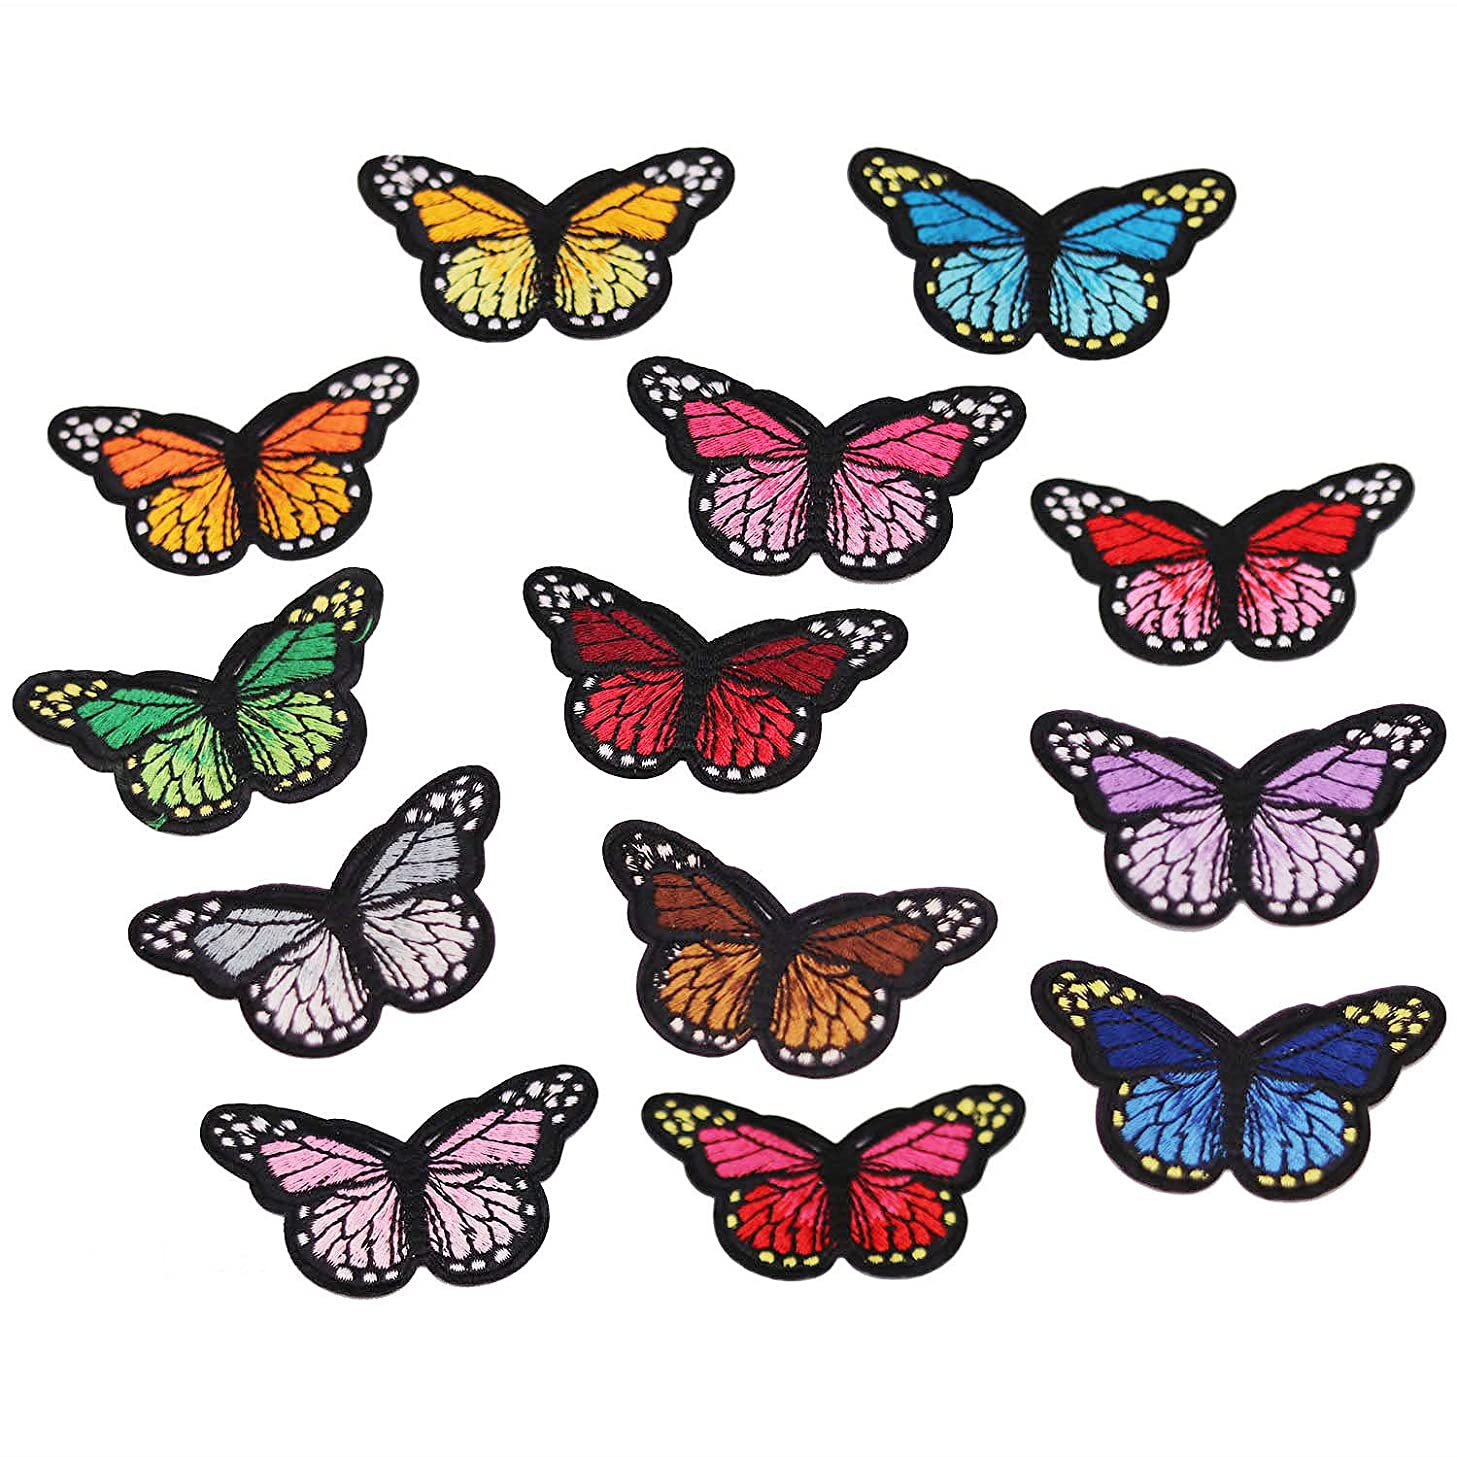 13pcs Multicolor Butterfly Iron on Patches Embroidered Motif Applique Assorted Size Decoration Sew On Patches Custom Patches for DIY Jeans, Jacket, Kid's Clothing, Bag,Caps, Arts C (Butterfly B 13pcs)